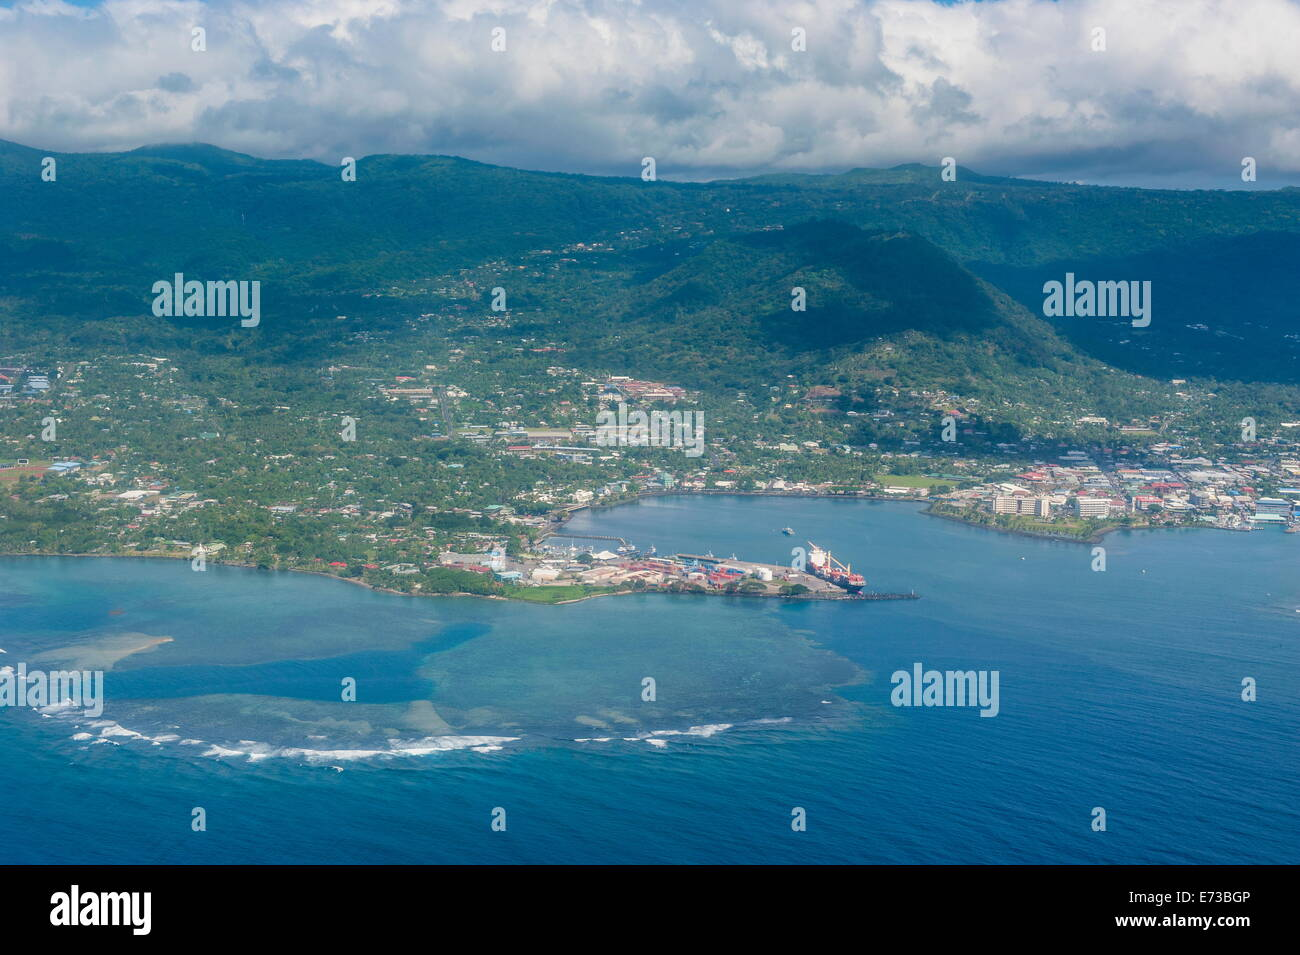 Aerial of the island of Upolu, Samoa, South Pacific, Pacific - Stock Image